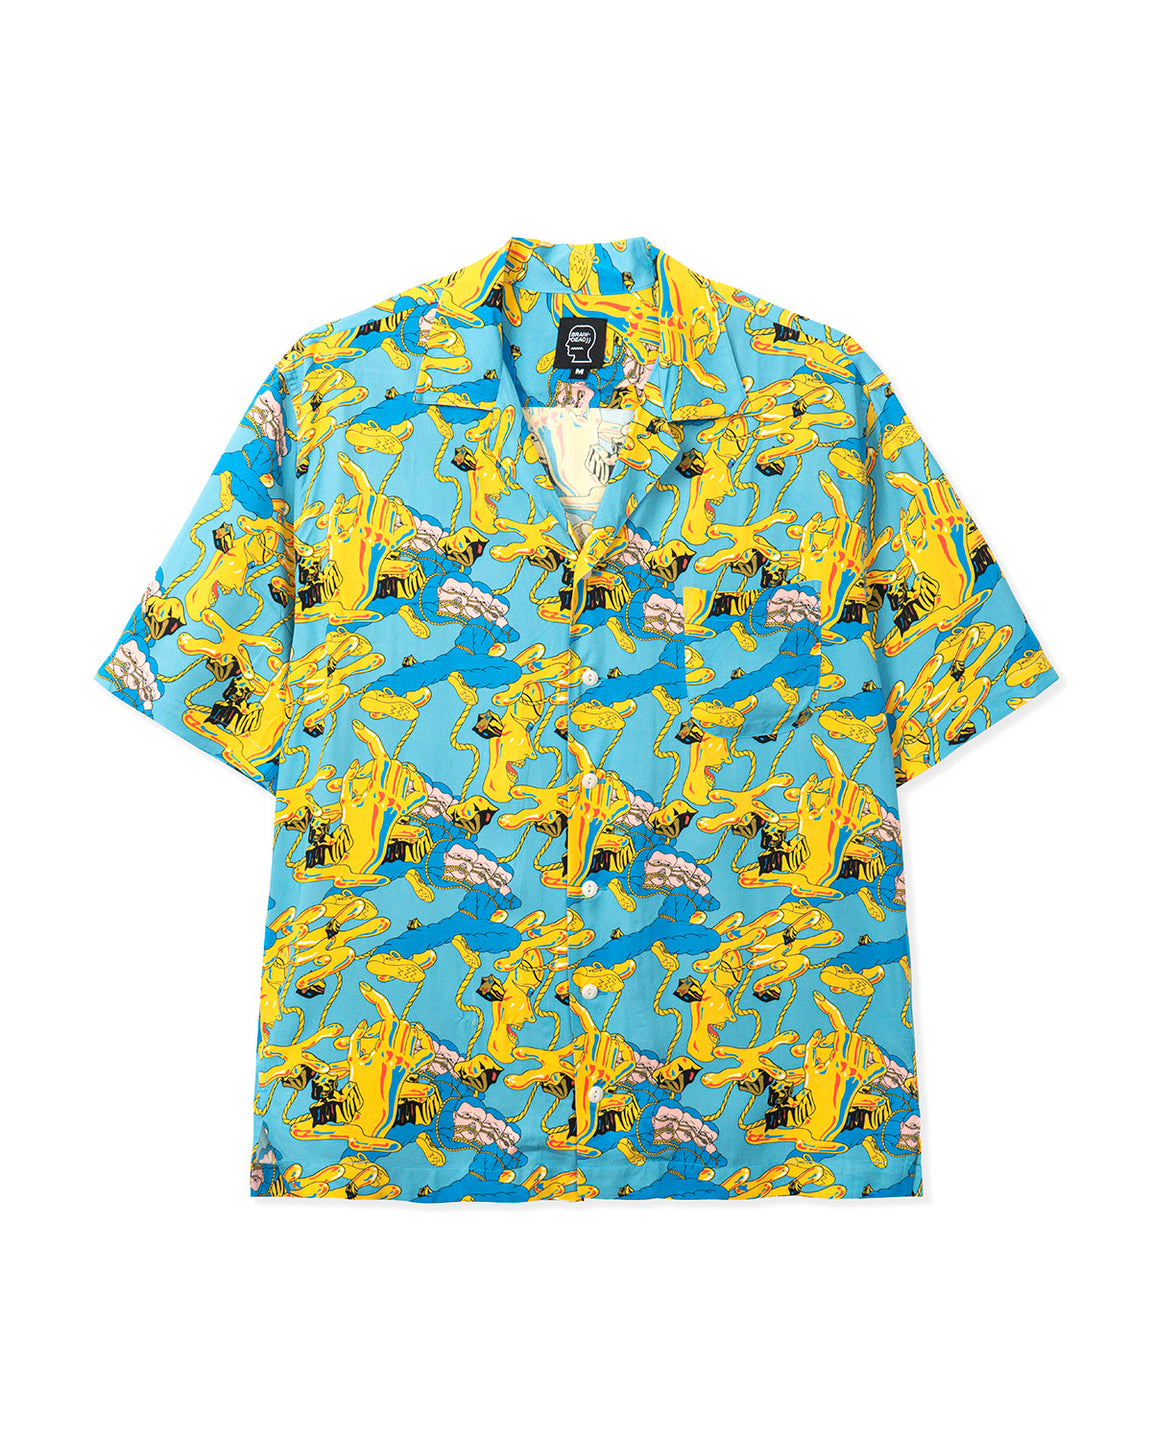 Jonny Negron Bondage Printed Short Sleeve Hawaiian Shirt - Blue